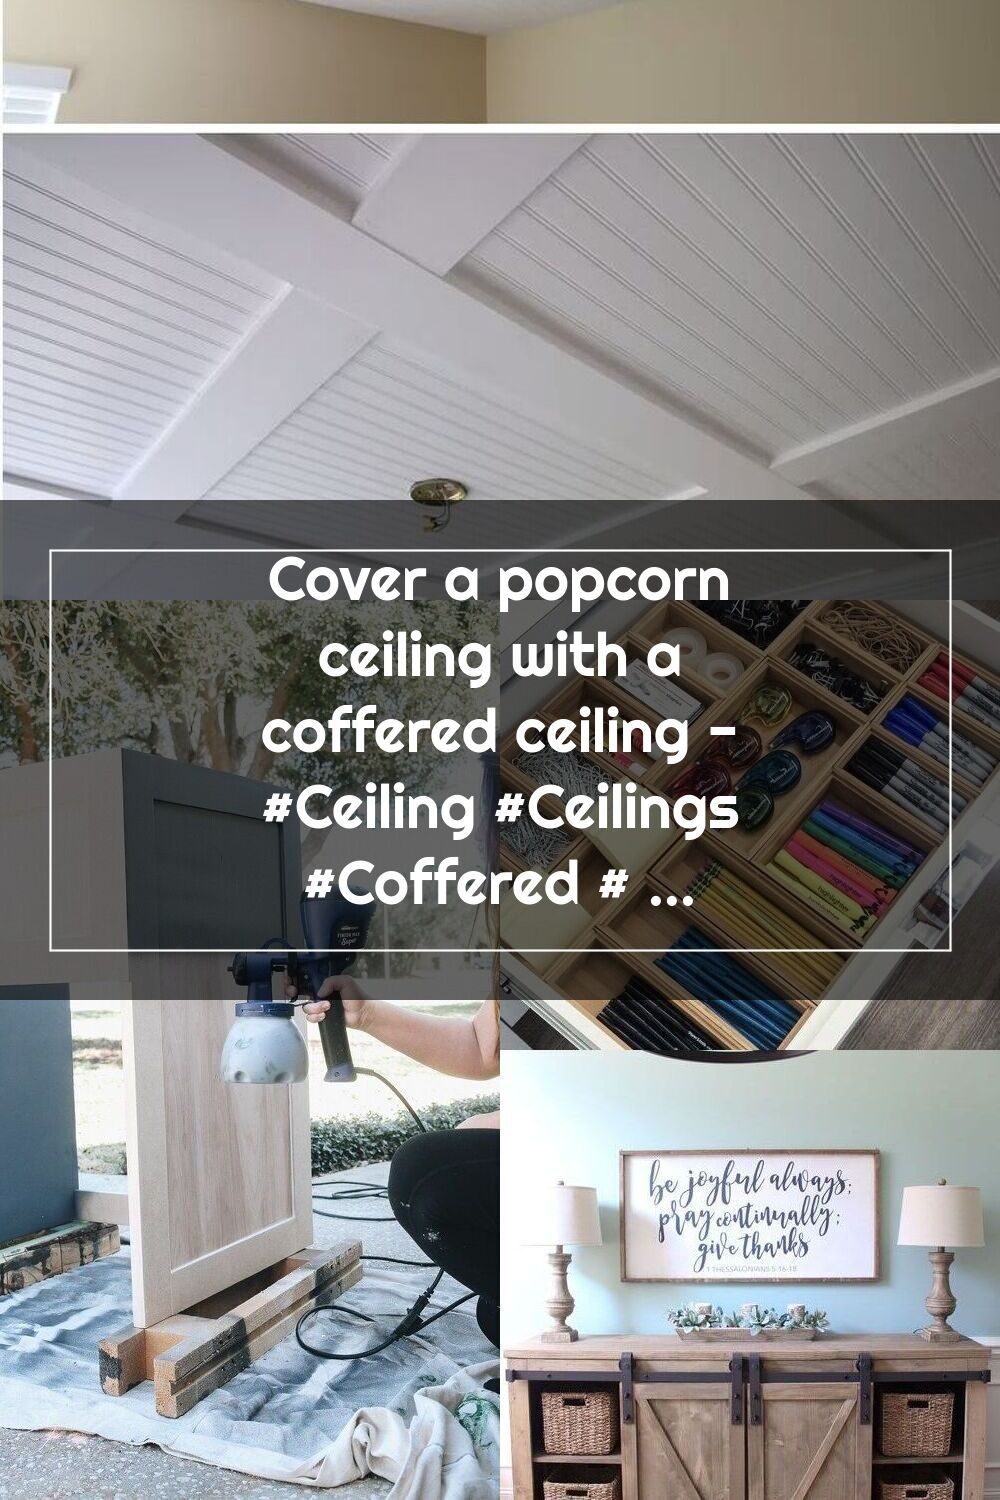 Cover a popcorn ceiling with a coffered ceiling ceiling